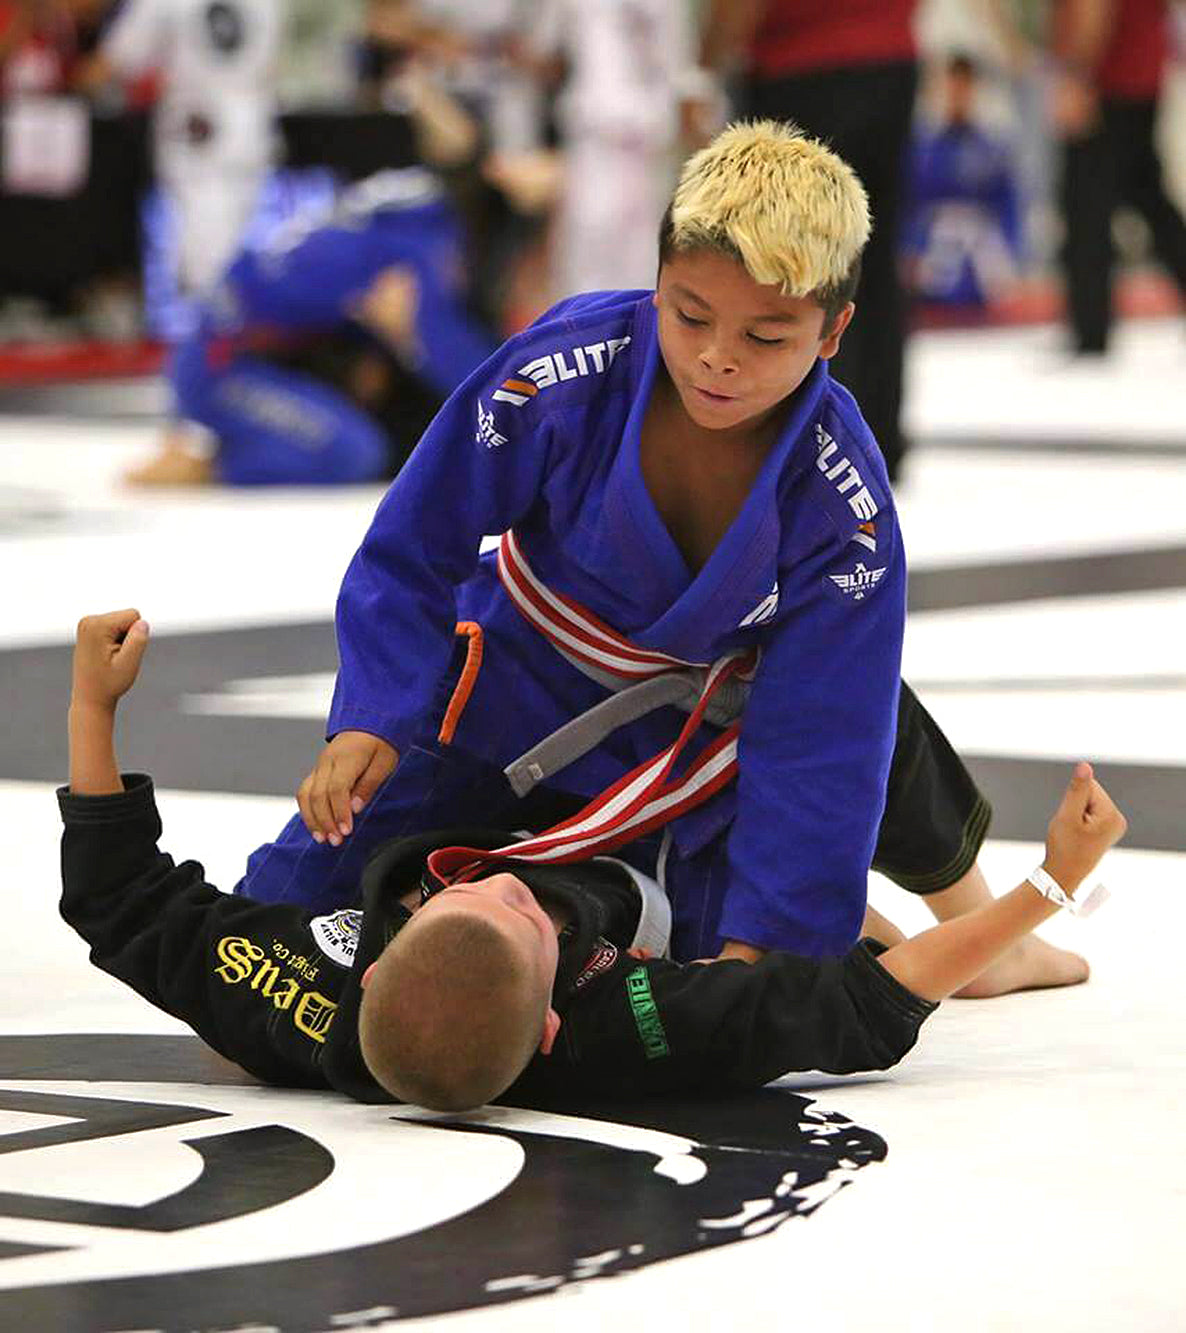 Elite Sports Team Elite Bjj Fighter Gabriel Garcia (Martelo)  Image15